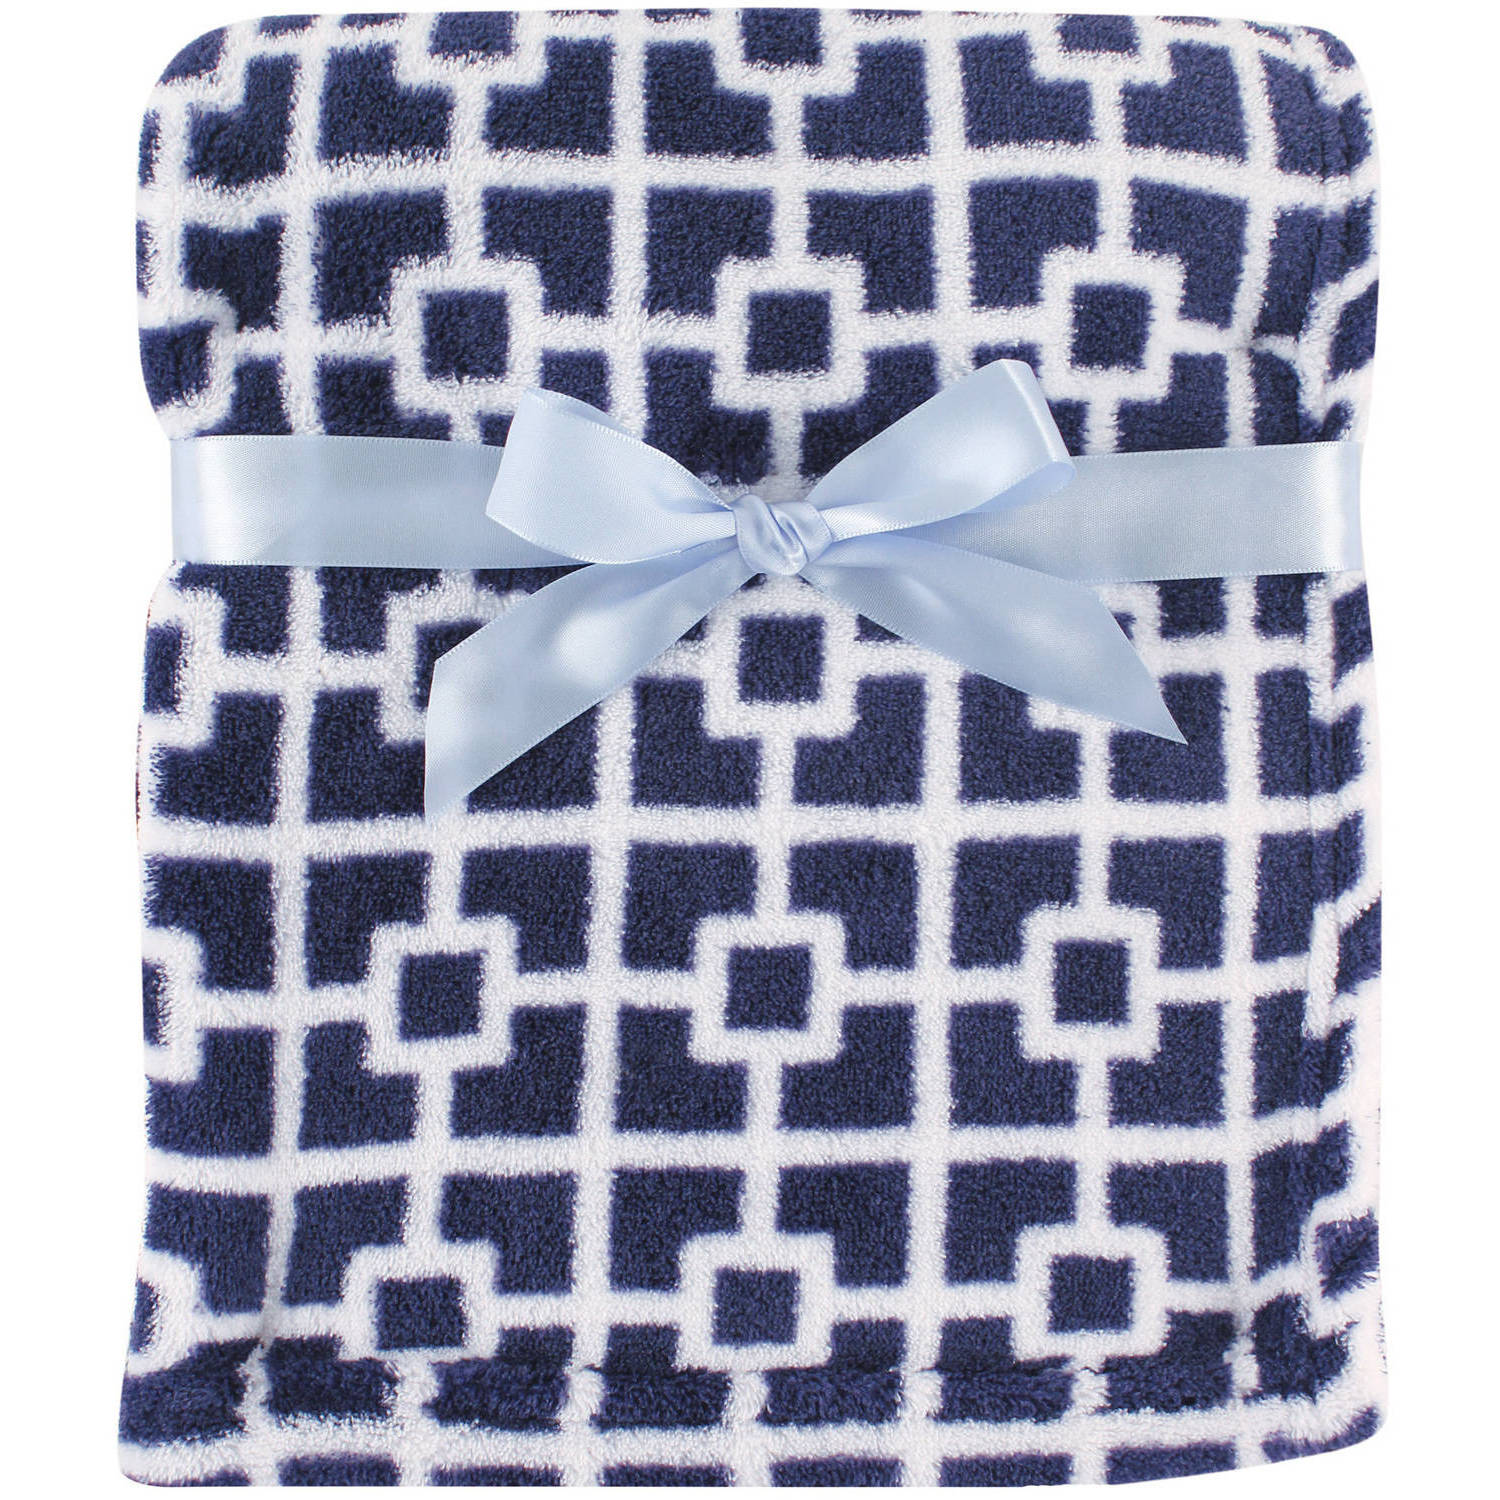 Luvable Friends Coral Fleece Blanket, Navy Trellis